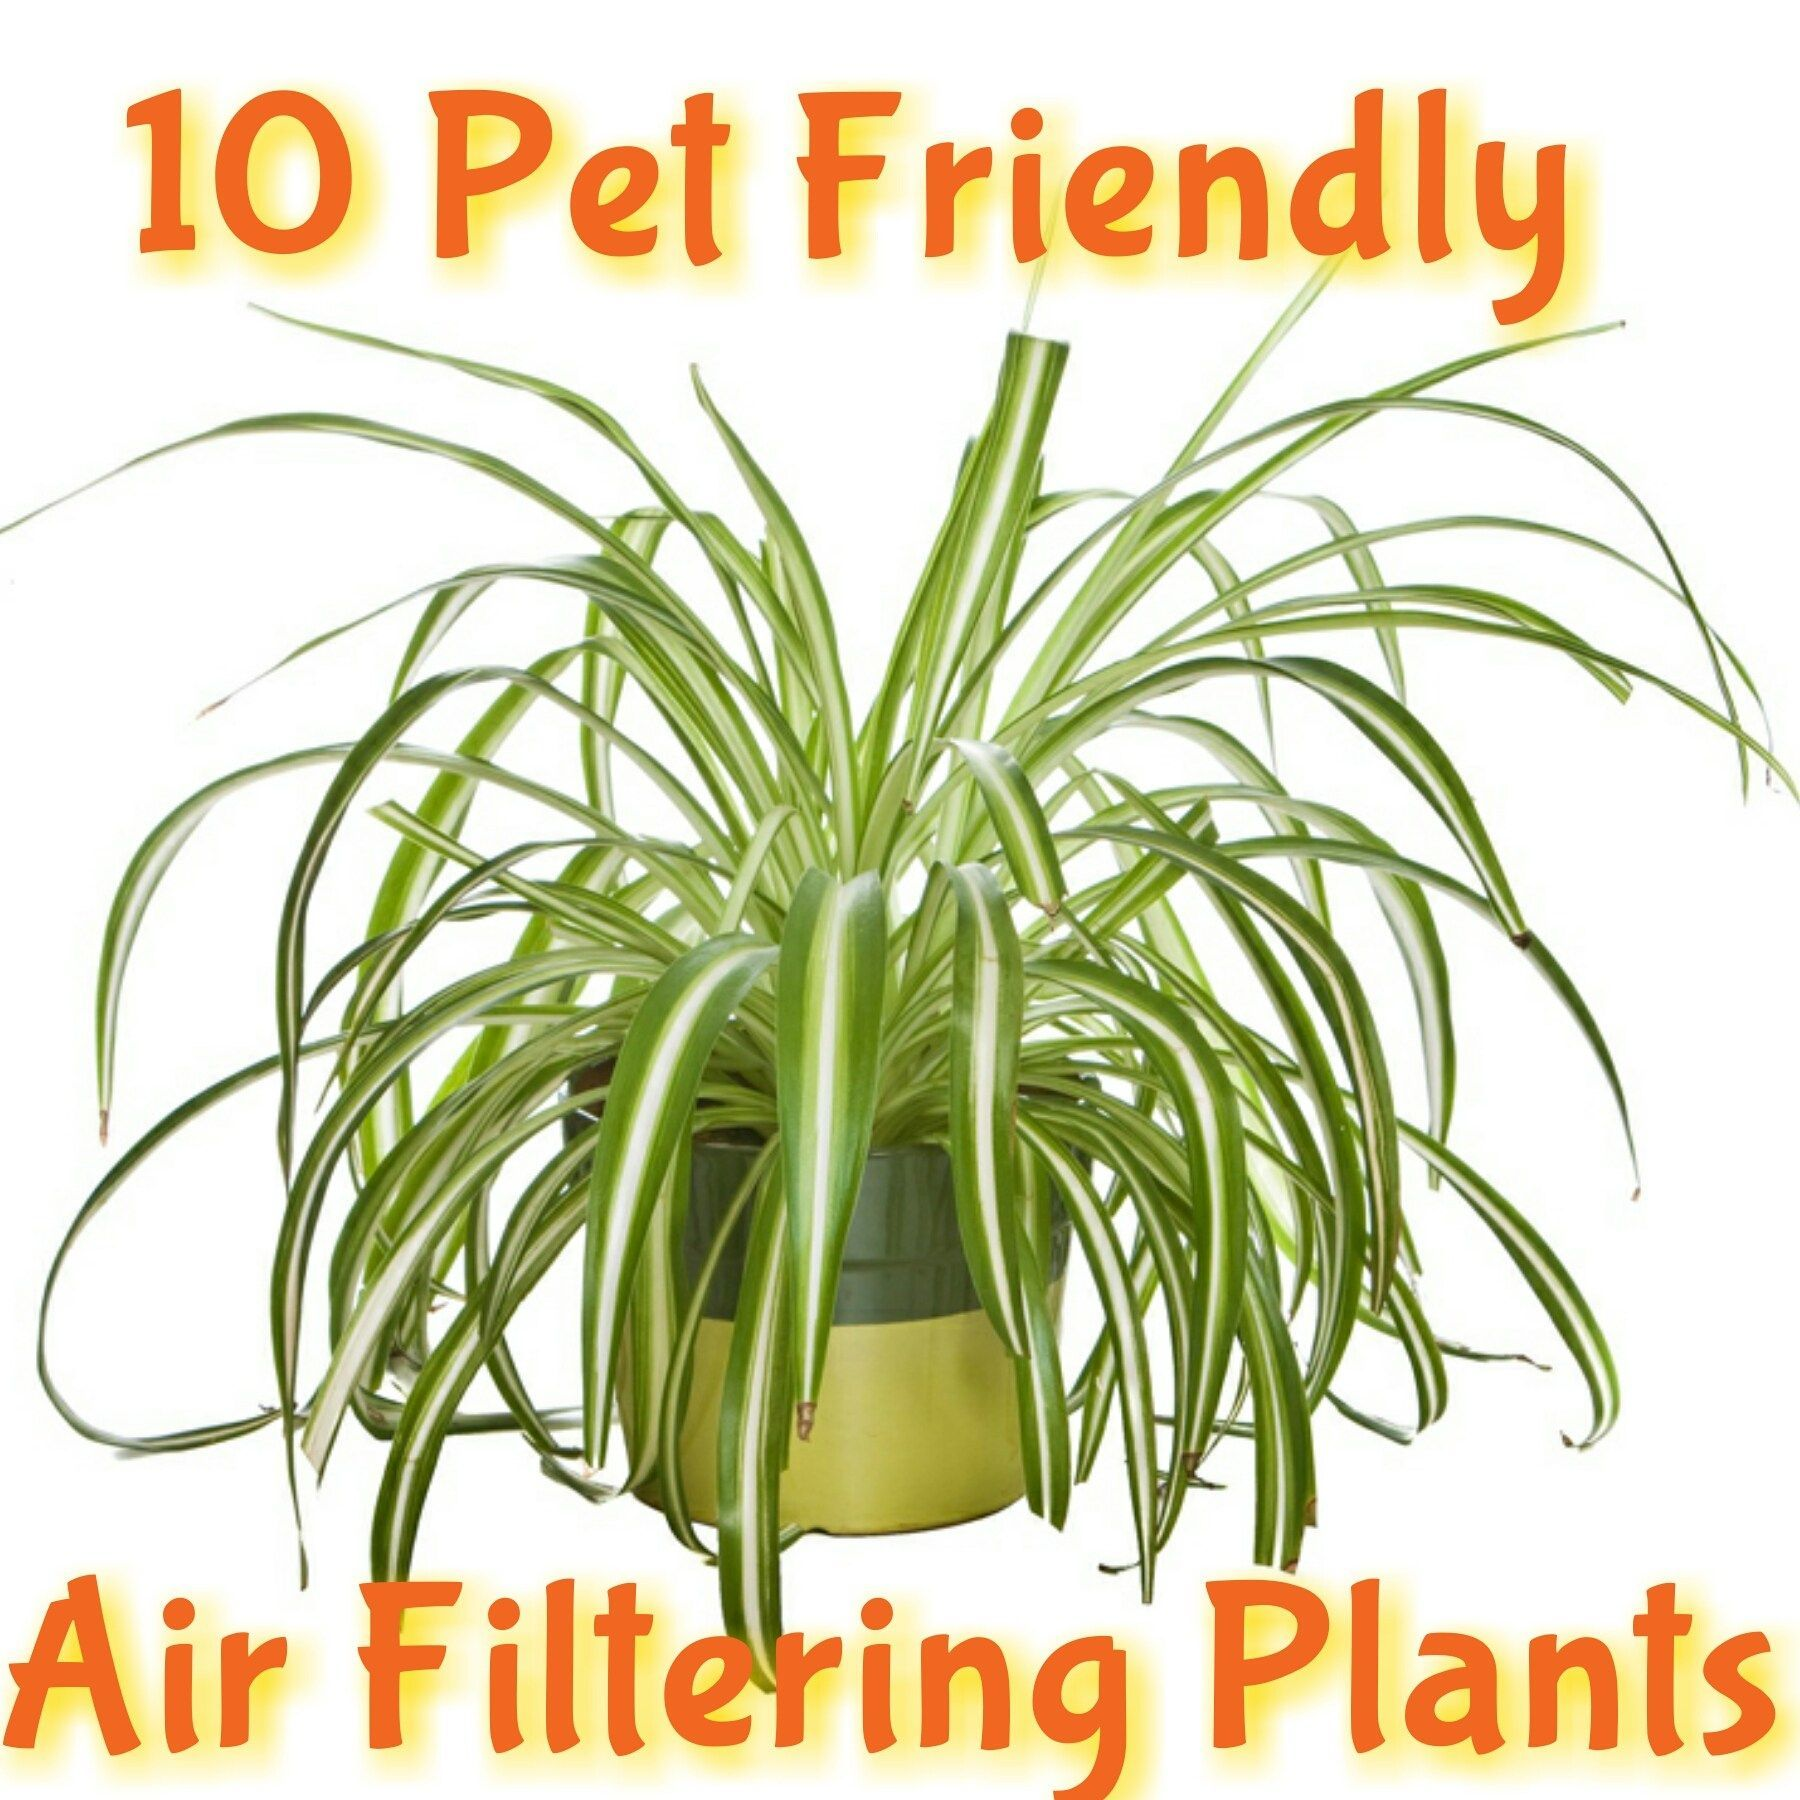 Some Air Filtering Plants Can Be Toxic To Dogs And Cats Find Out Which Ones Can Modern De In 2020 Air Filtering Plants Plants Pet Friendly Low Light House Plants